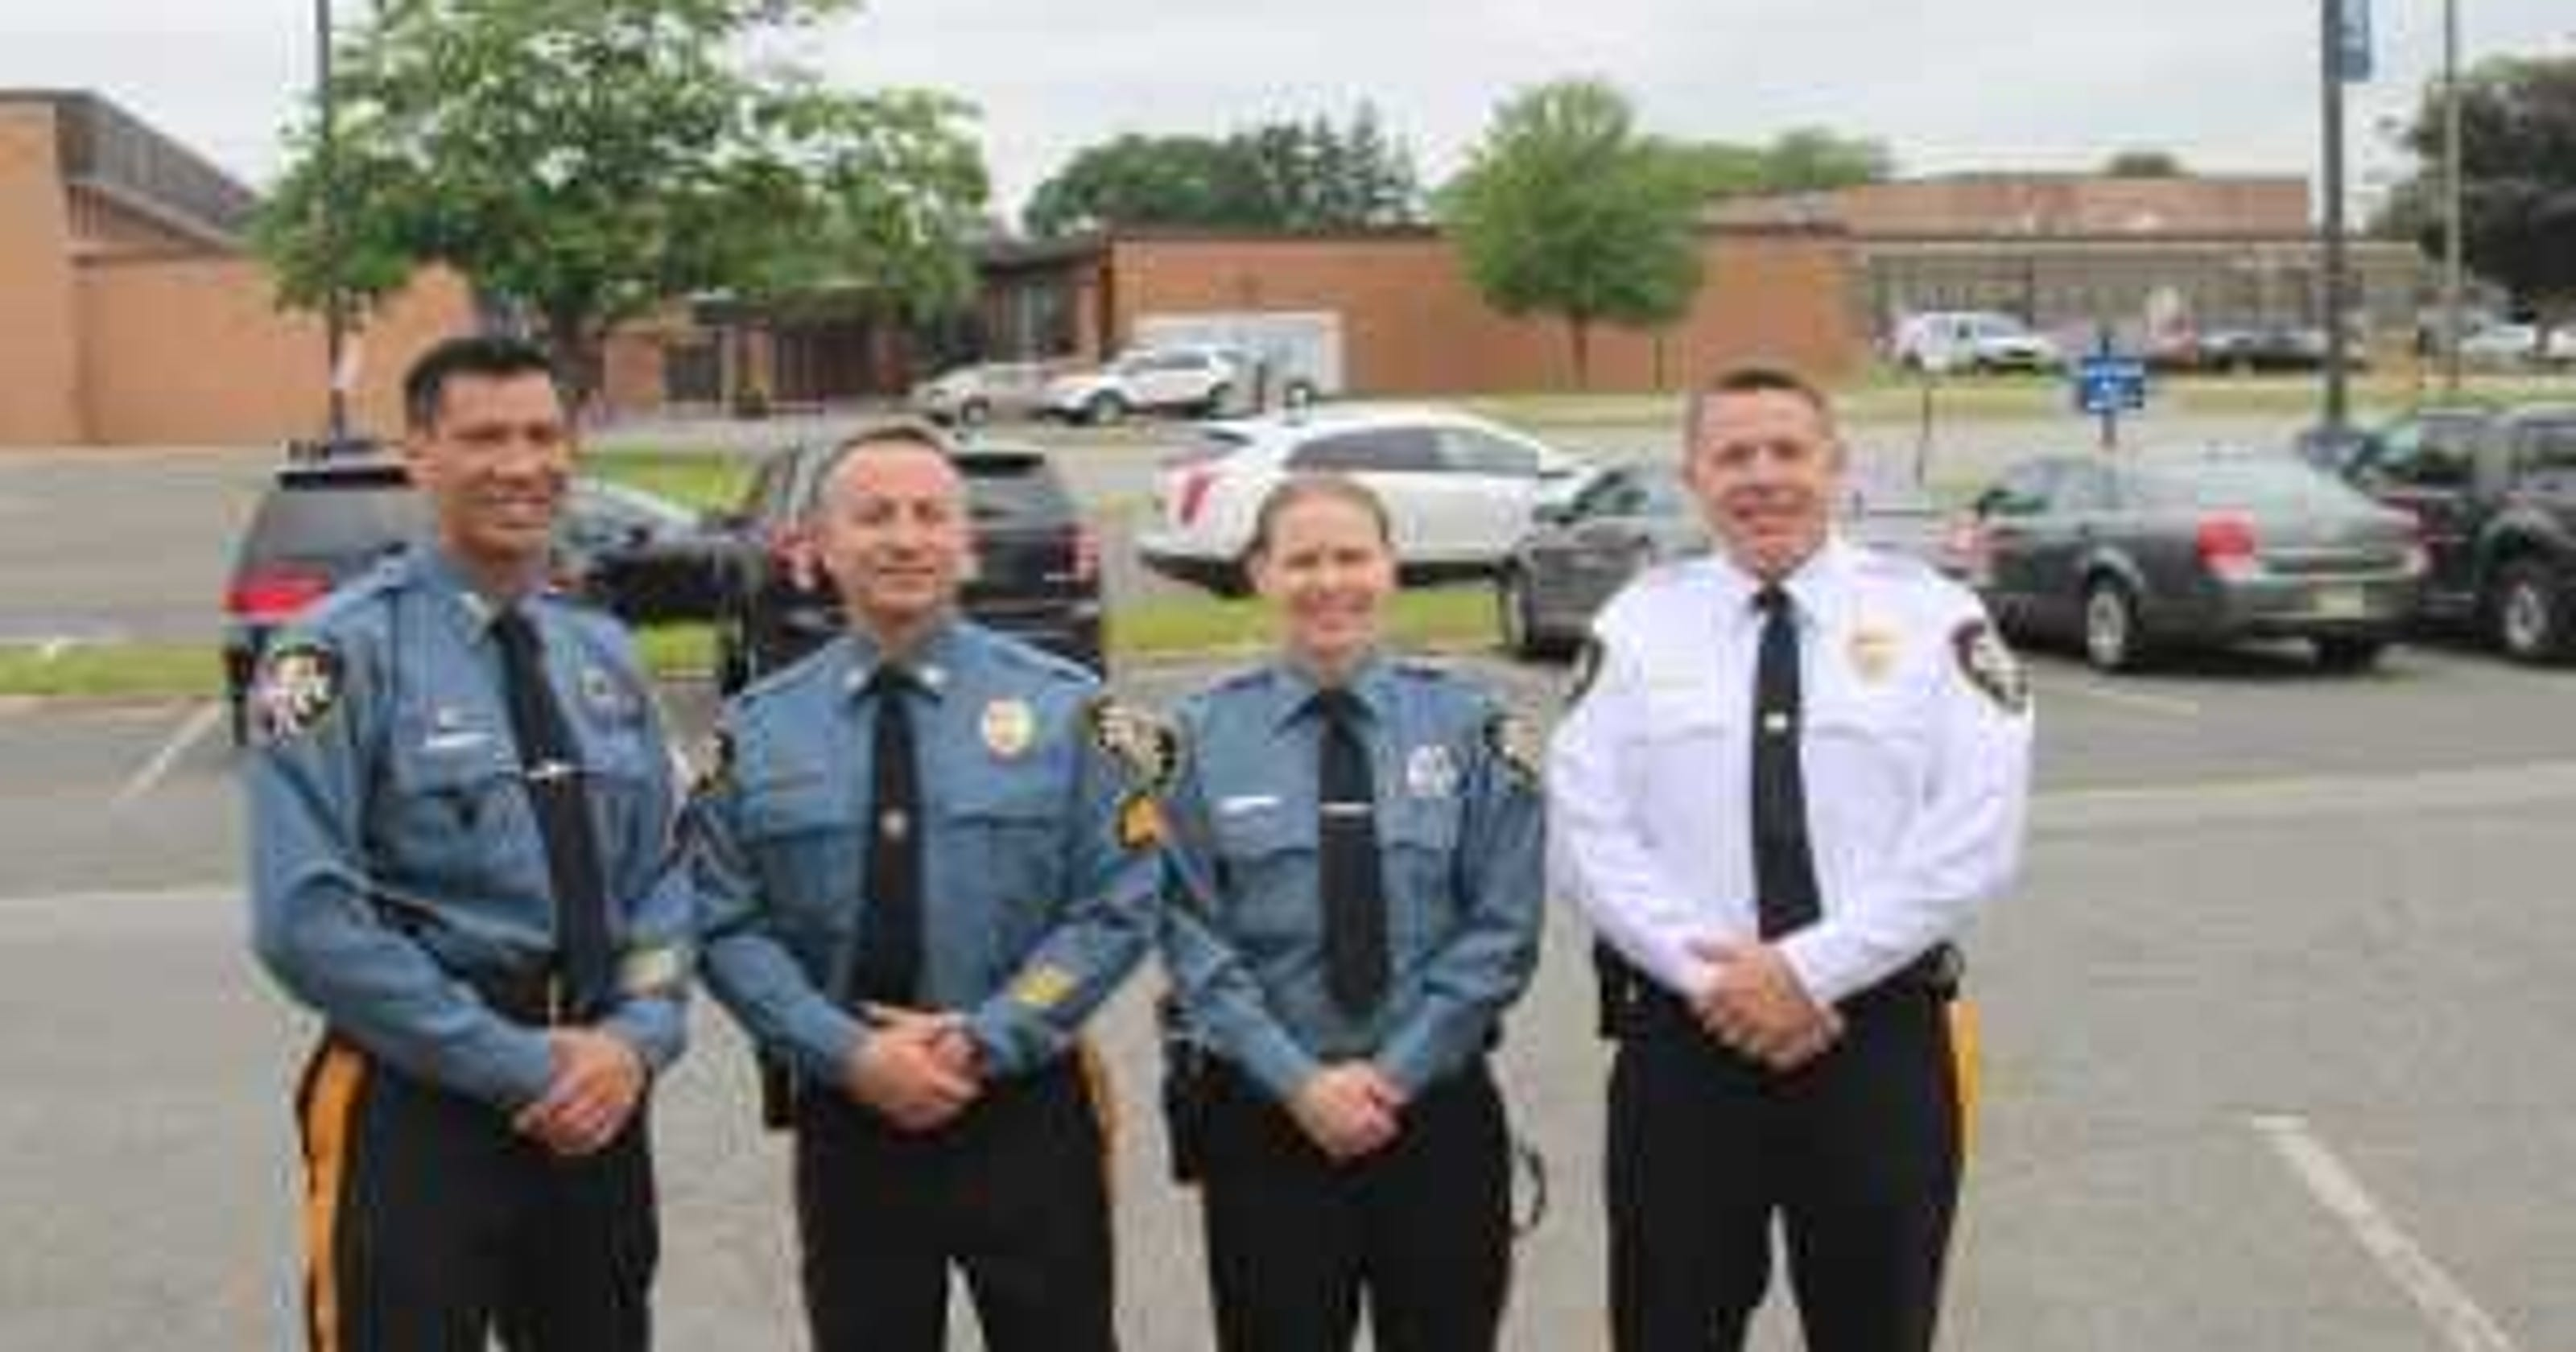 In Wayne NJ, cops will lace up skates for cancer-stricken officer